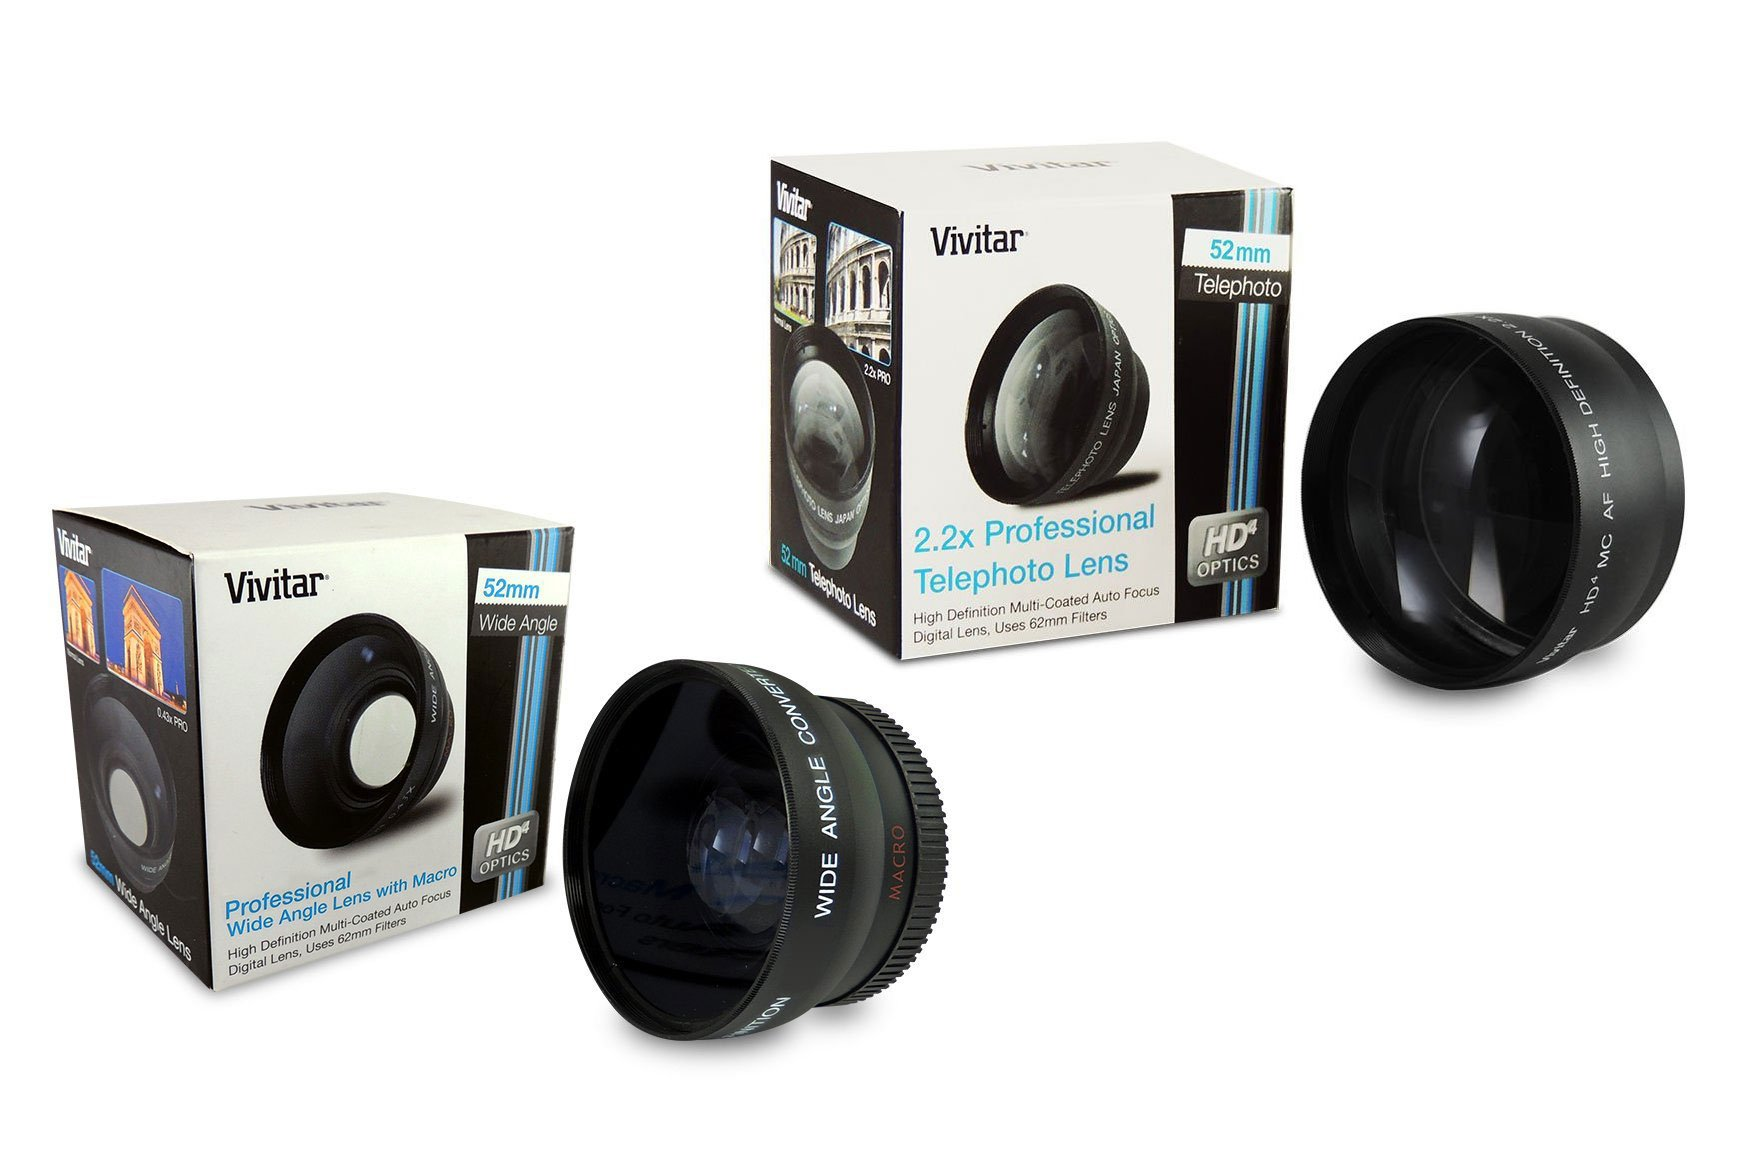 52mm Lens Bundle: Vivitar 2.2x Telephoto and 0.43x Wide Angle High Definition w/Detachable Macro Lens for Cameras with 52mm Filter Threads